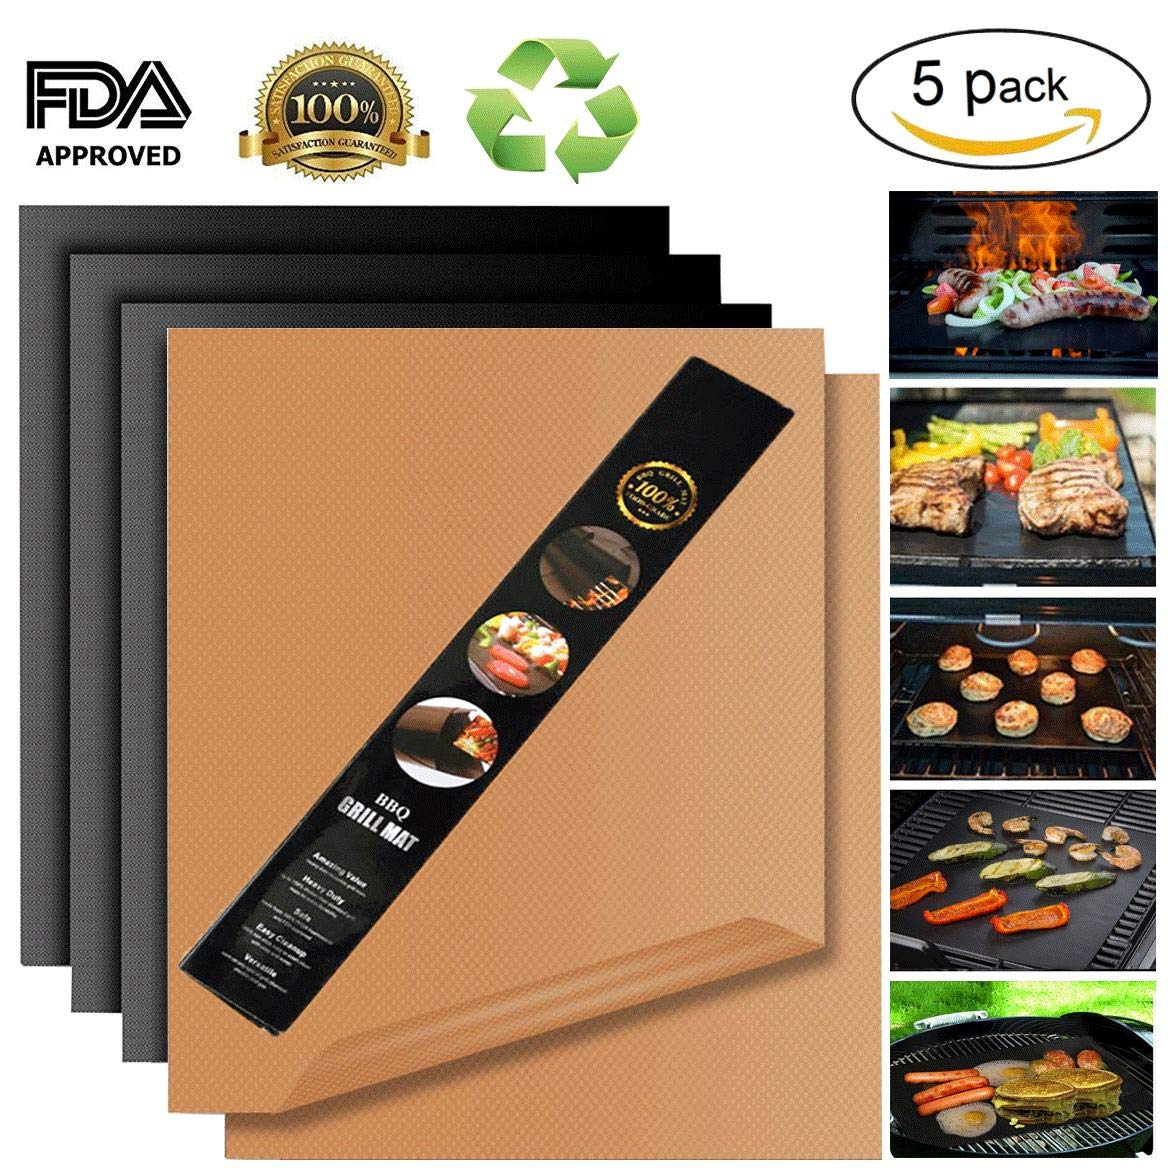 Miroksh Copper Grill Mat,Non Stick BBQ Baking Mat Set of 5 Reusable,Easy to Clean PTFE Teflon Fiber Grill Roast Sheets Gas, Charcoal, Electric Grill (Gold Black